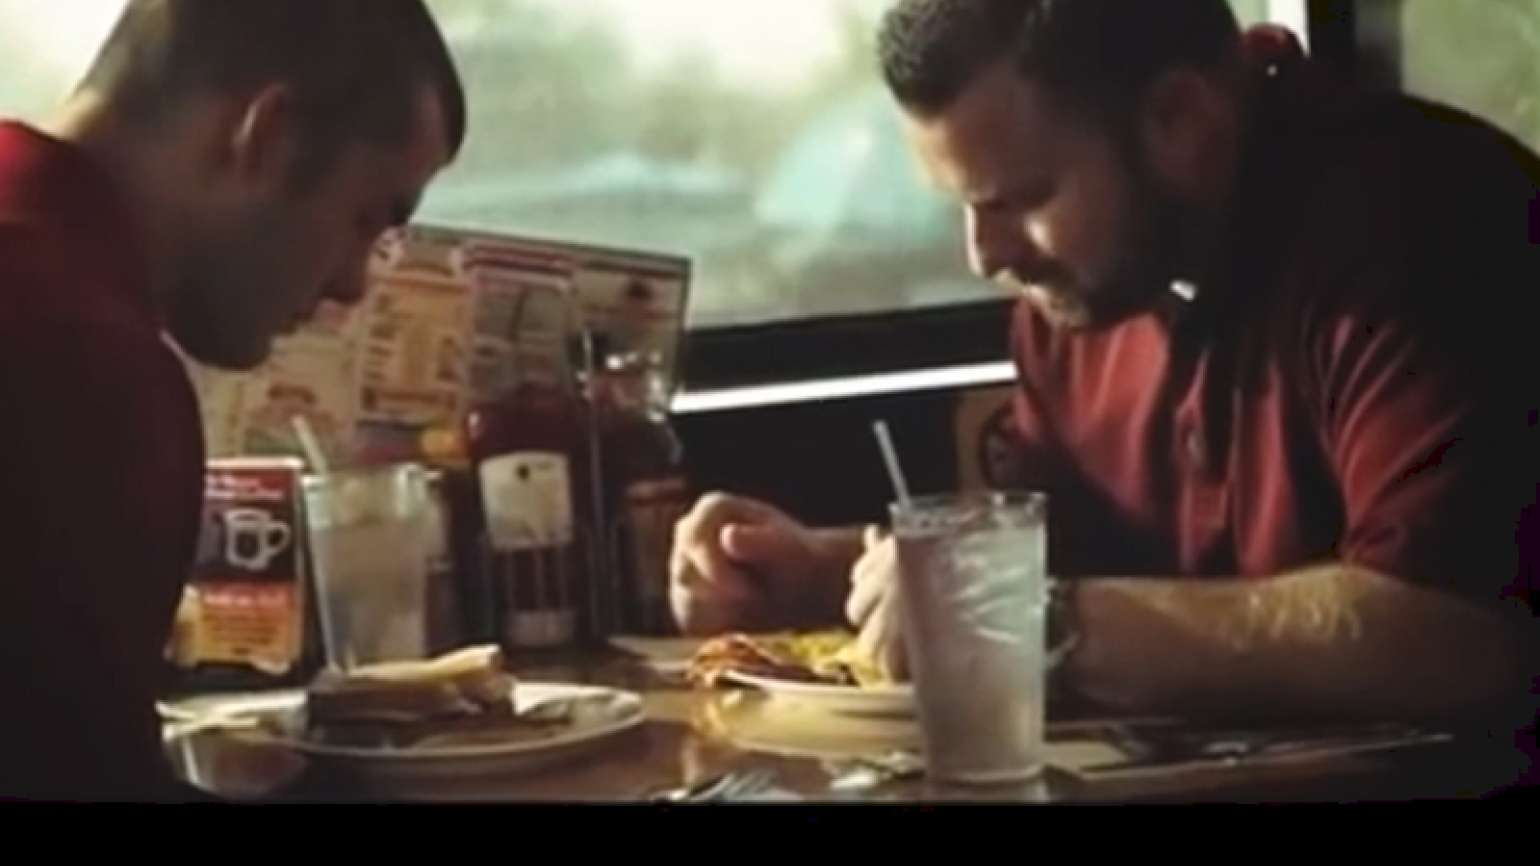 Two men pray over meal.